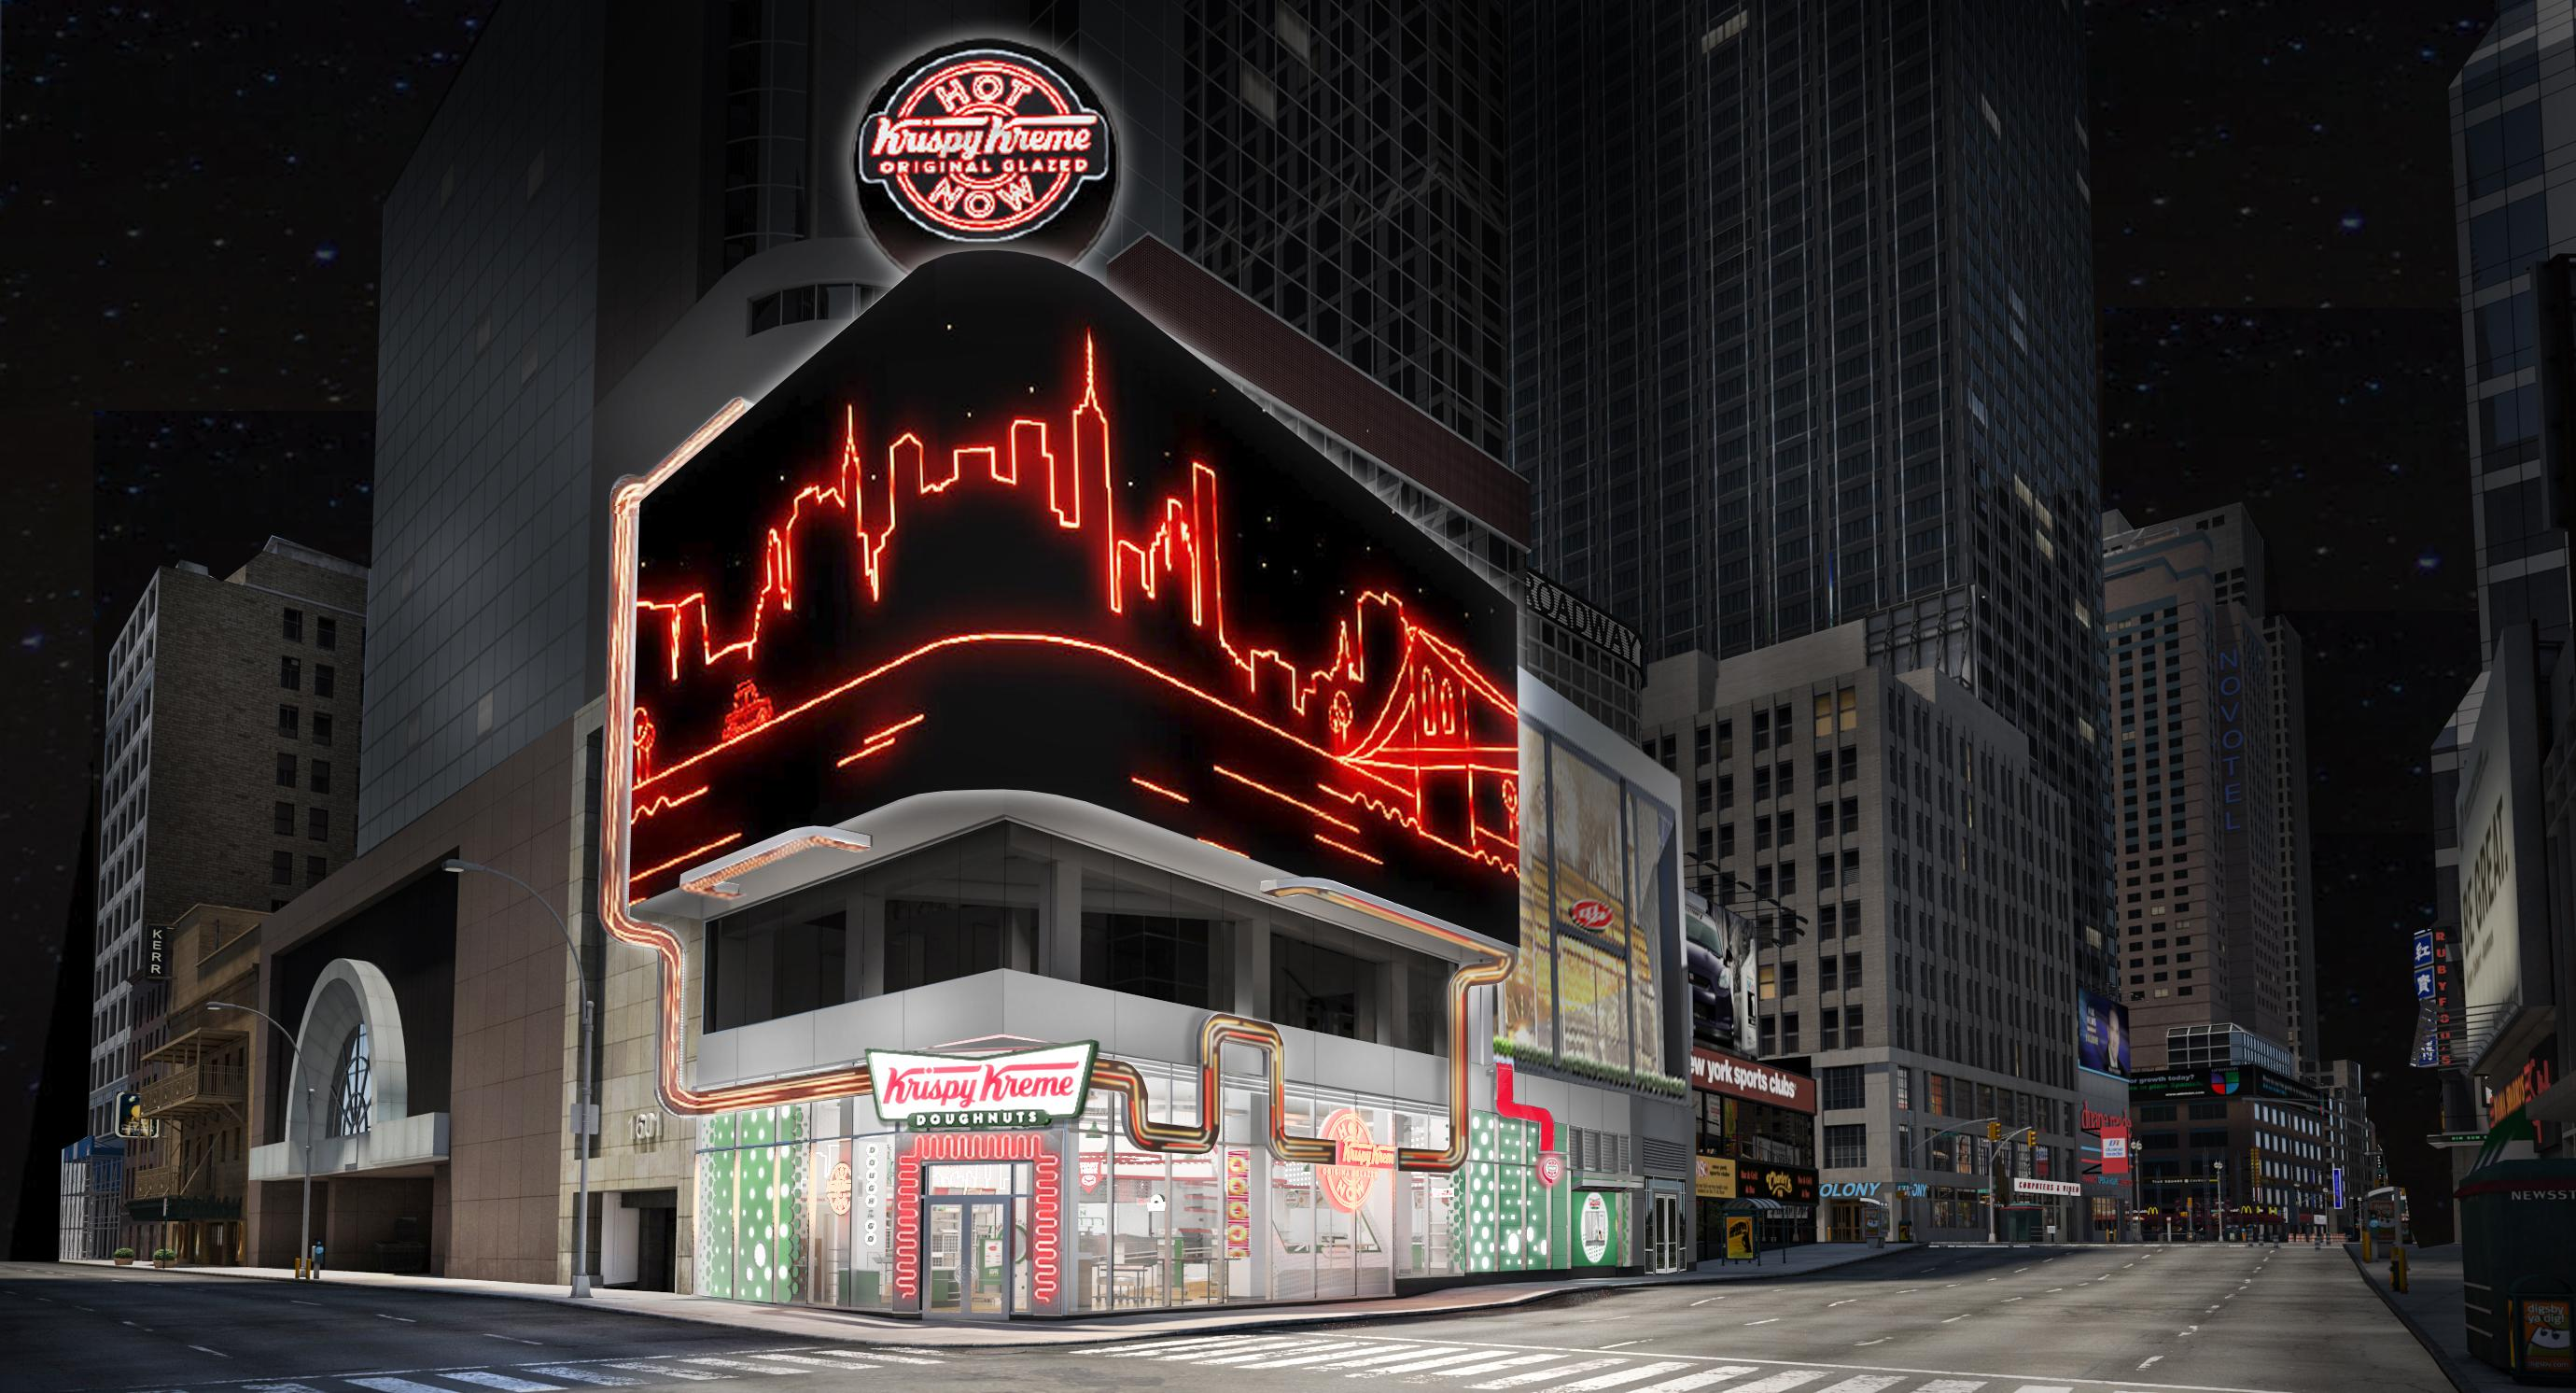 Krispy Kreme Times Square Flagship at Broadway and 48th Street will feature hot, fresh doughnuts 24/7, world's largest Hot Light, new immersive and interactive digital experiences, and exclusive merchandise. (CNN Newsource)